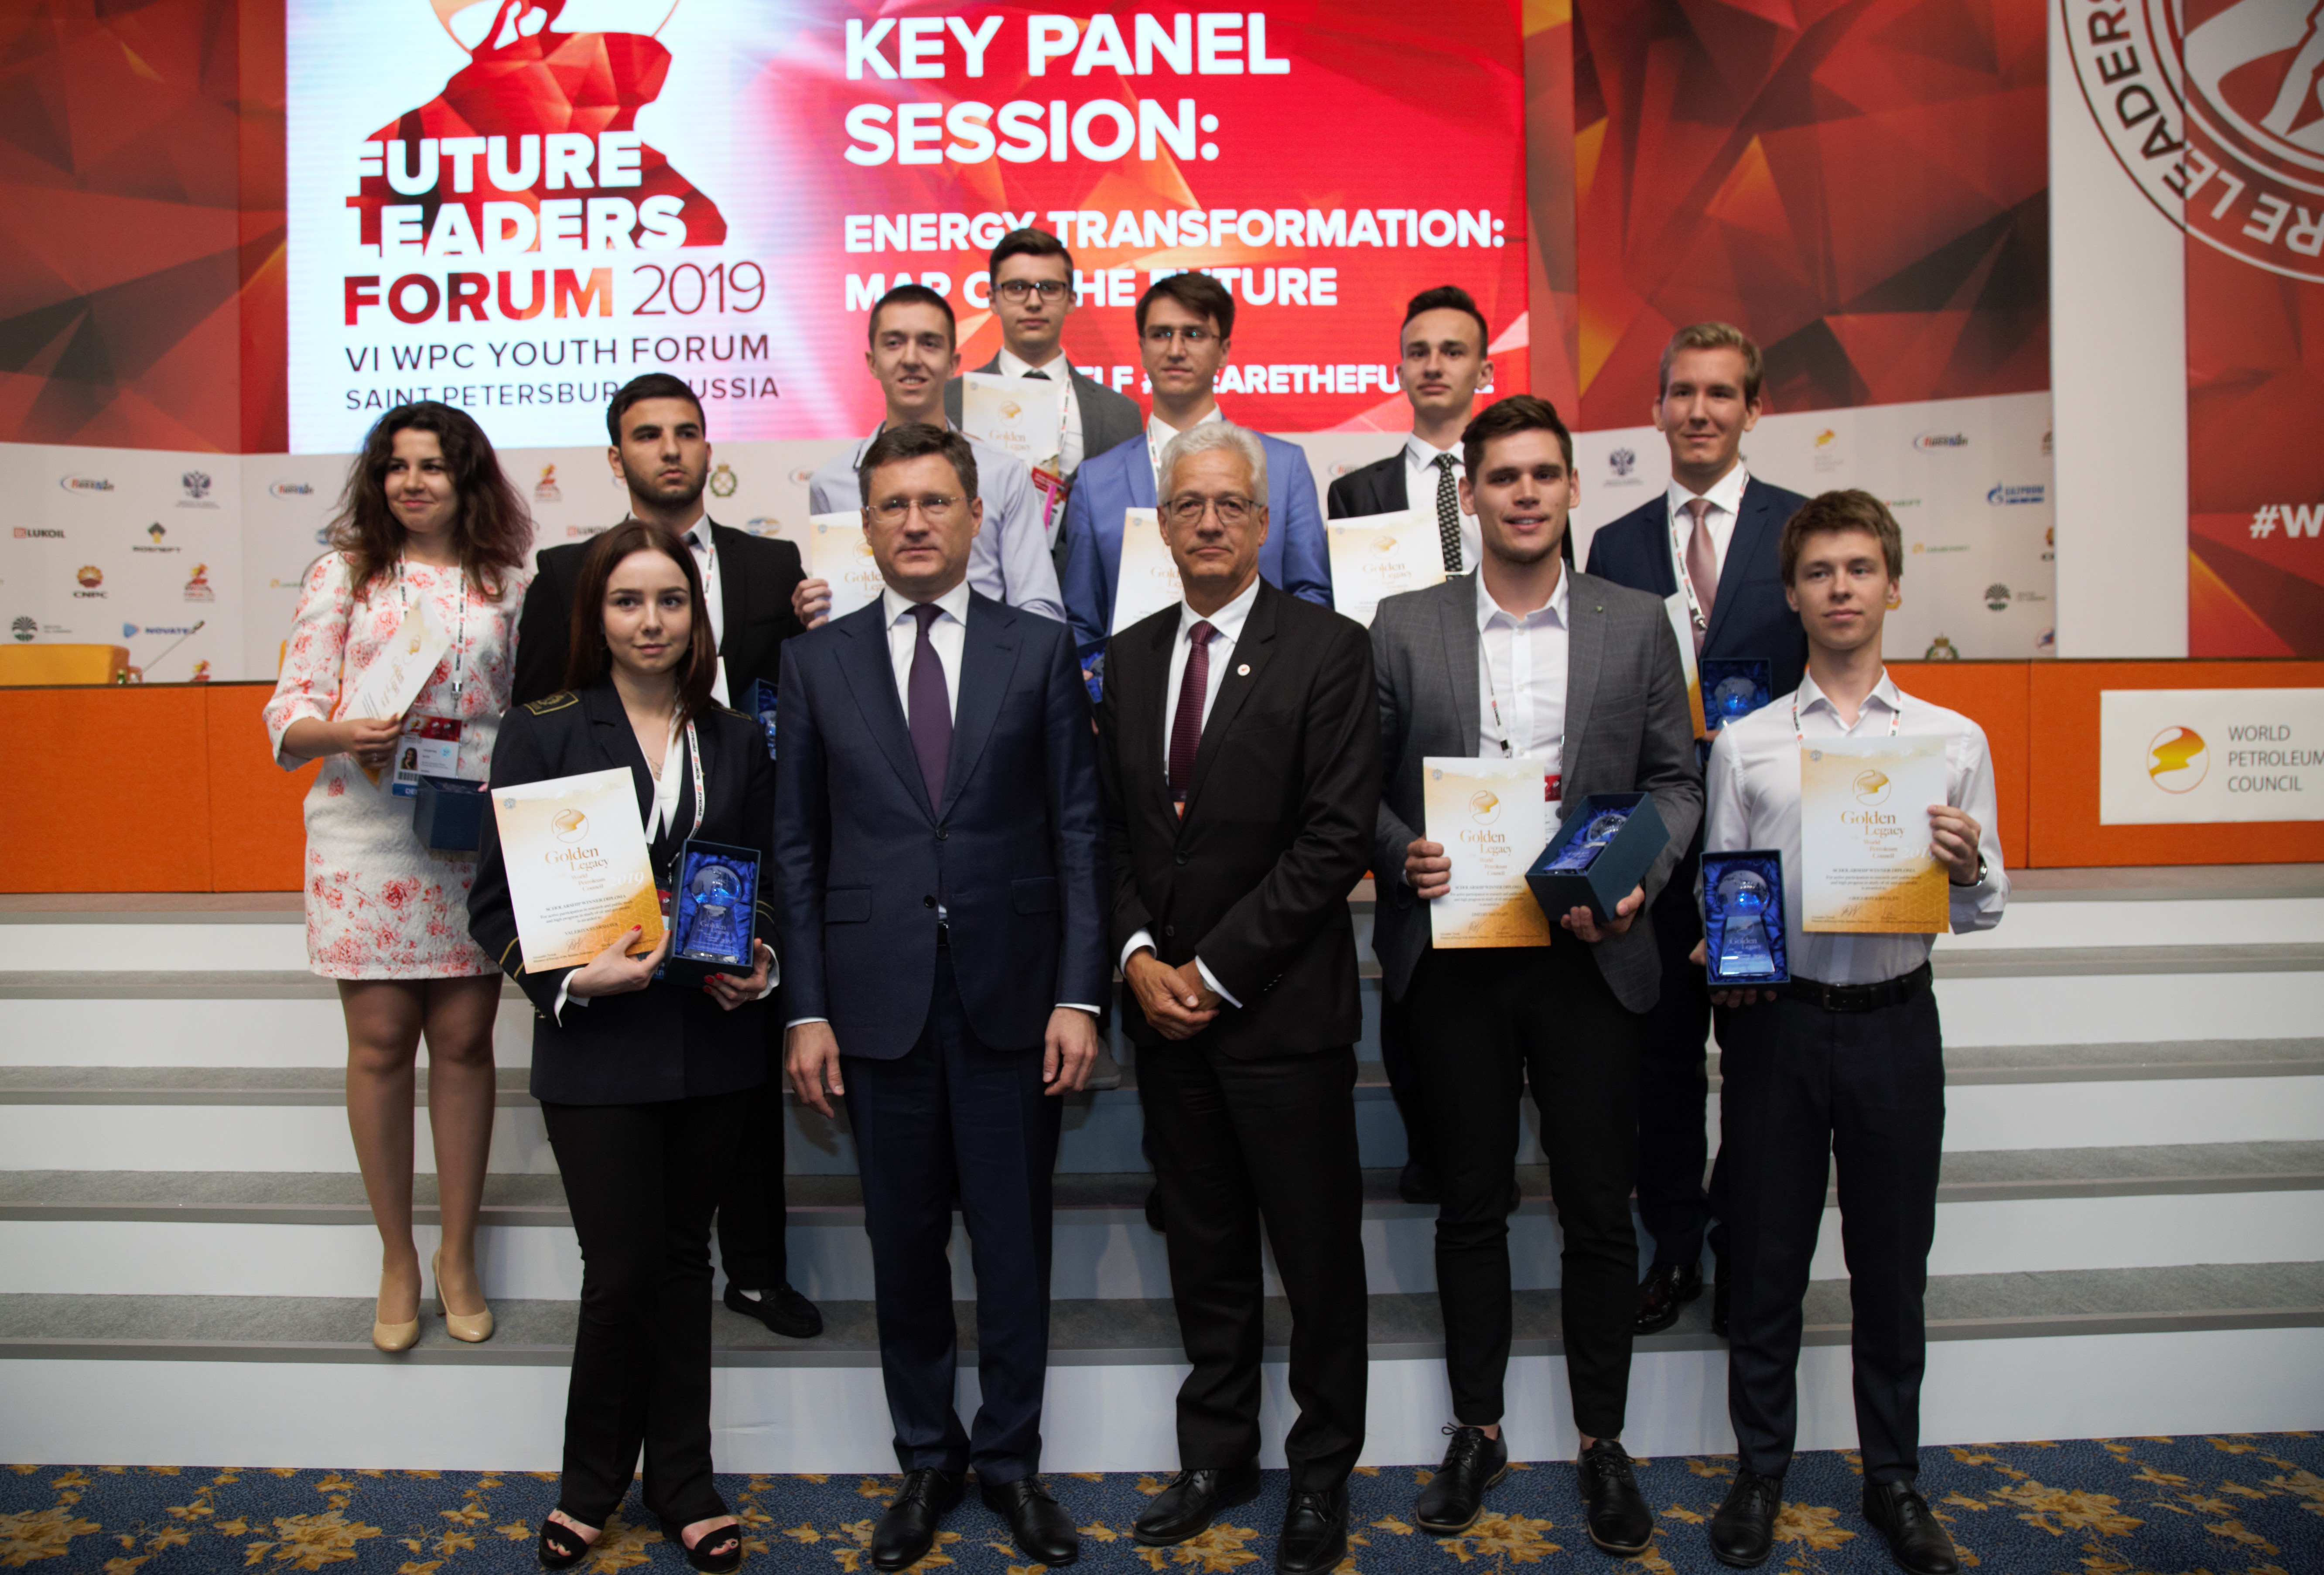 Golden Legacy award ceremony was held during the Future Leaders Forum